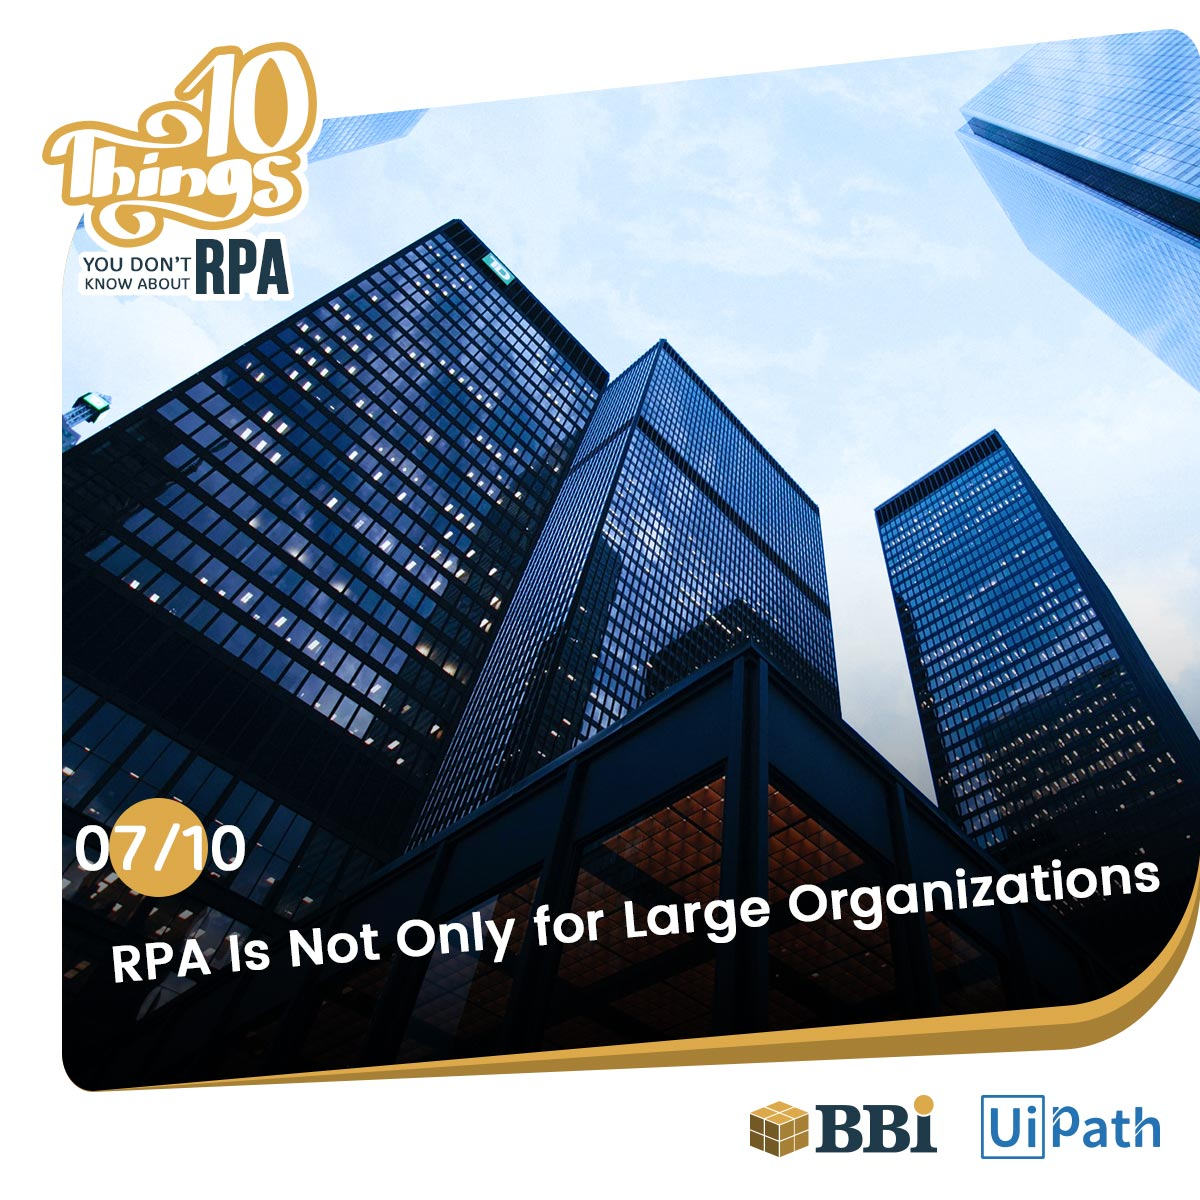 RPA technology for Organizations